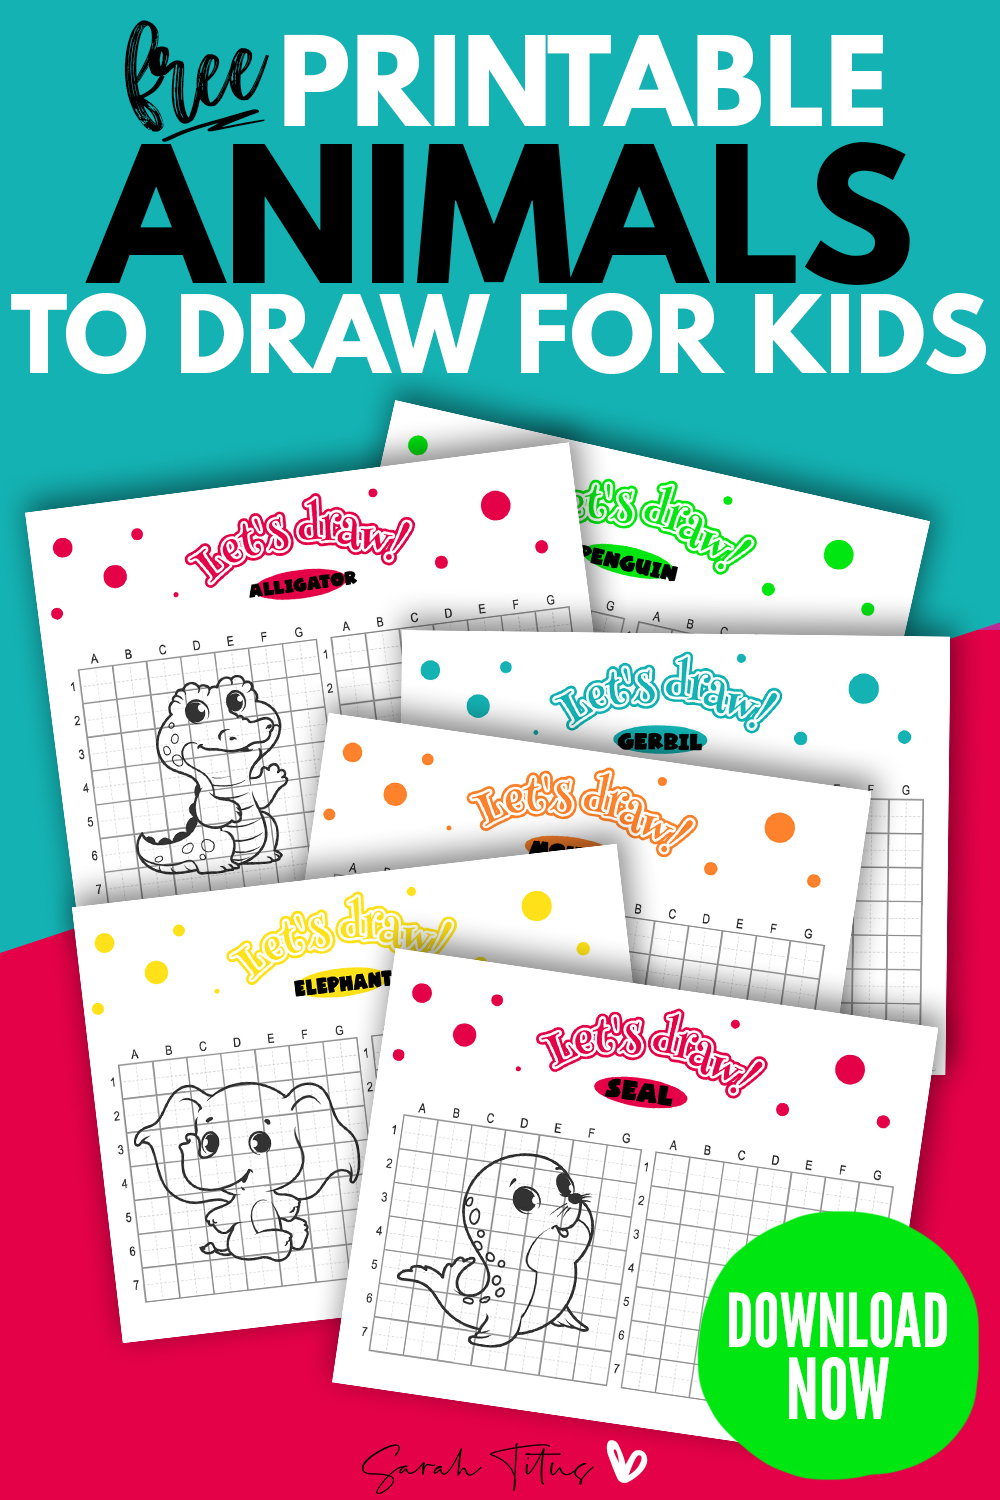 31 Easy Cute Animals To Draw Step By Step Free Printable Sarah Titus From Homeless To 8 Figures